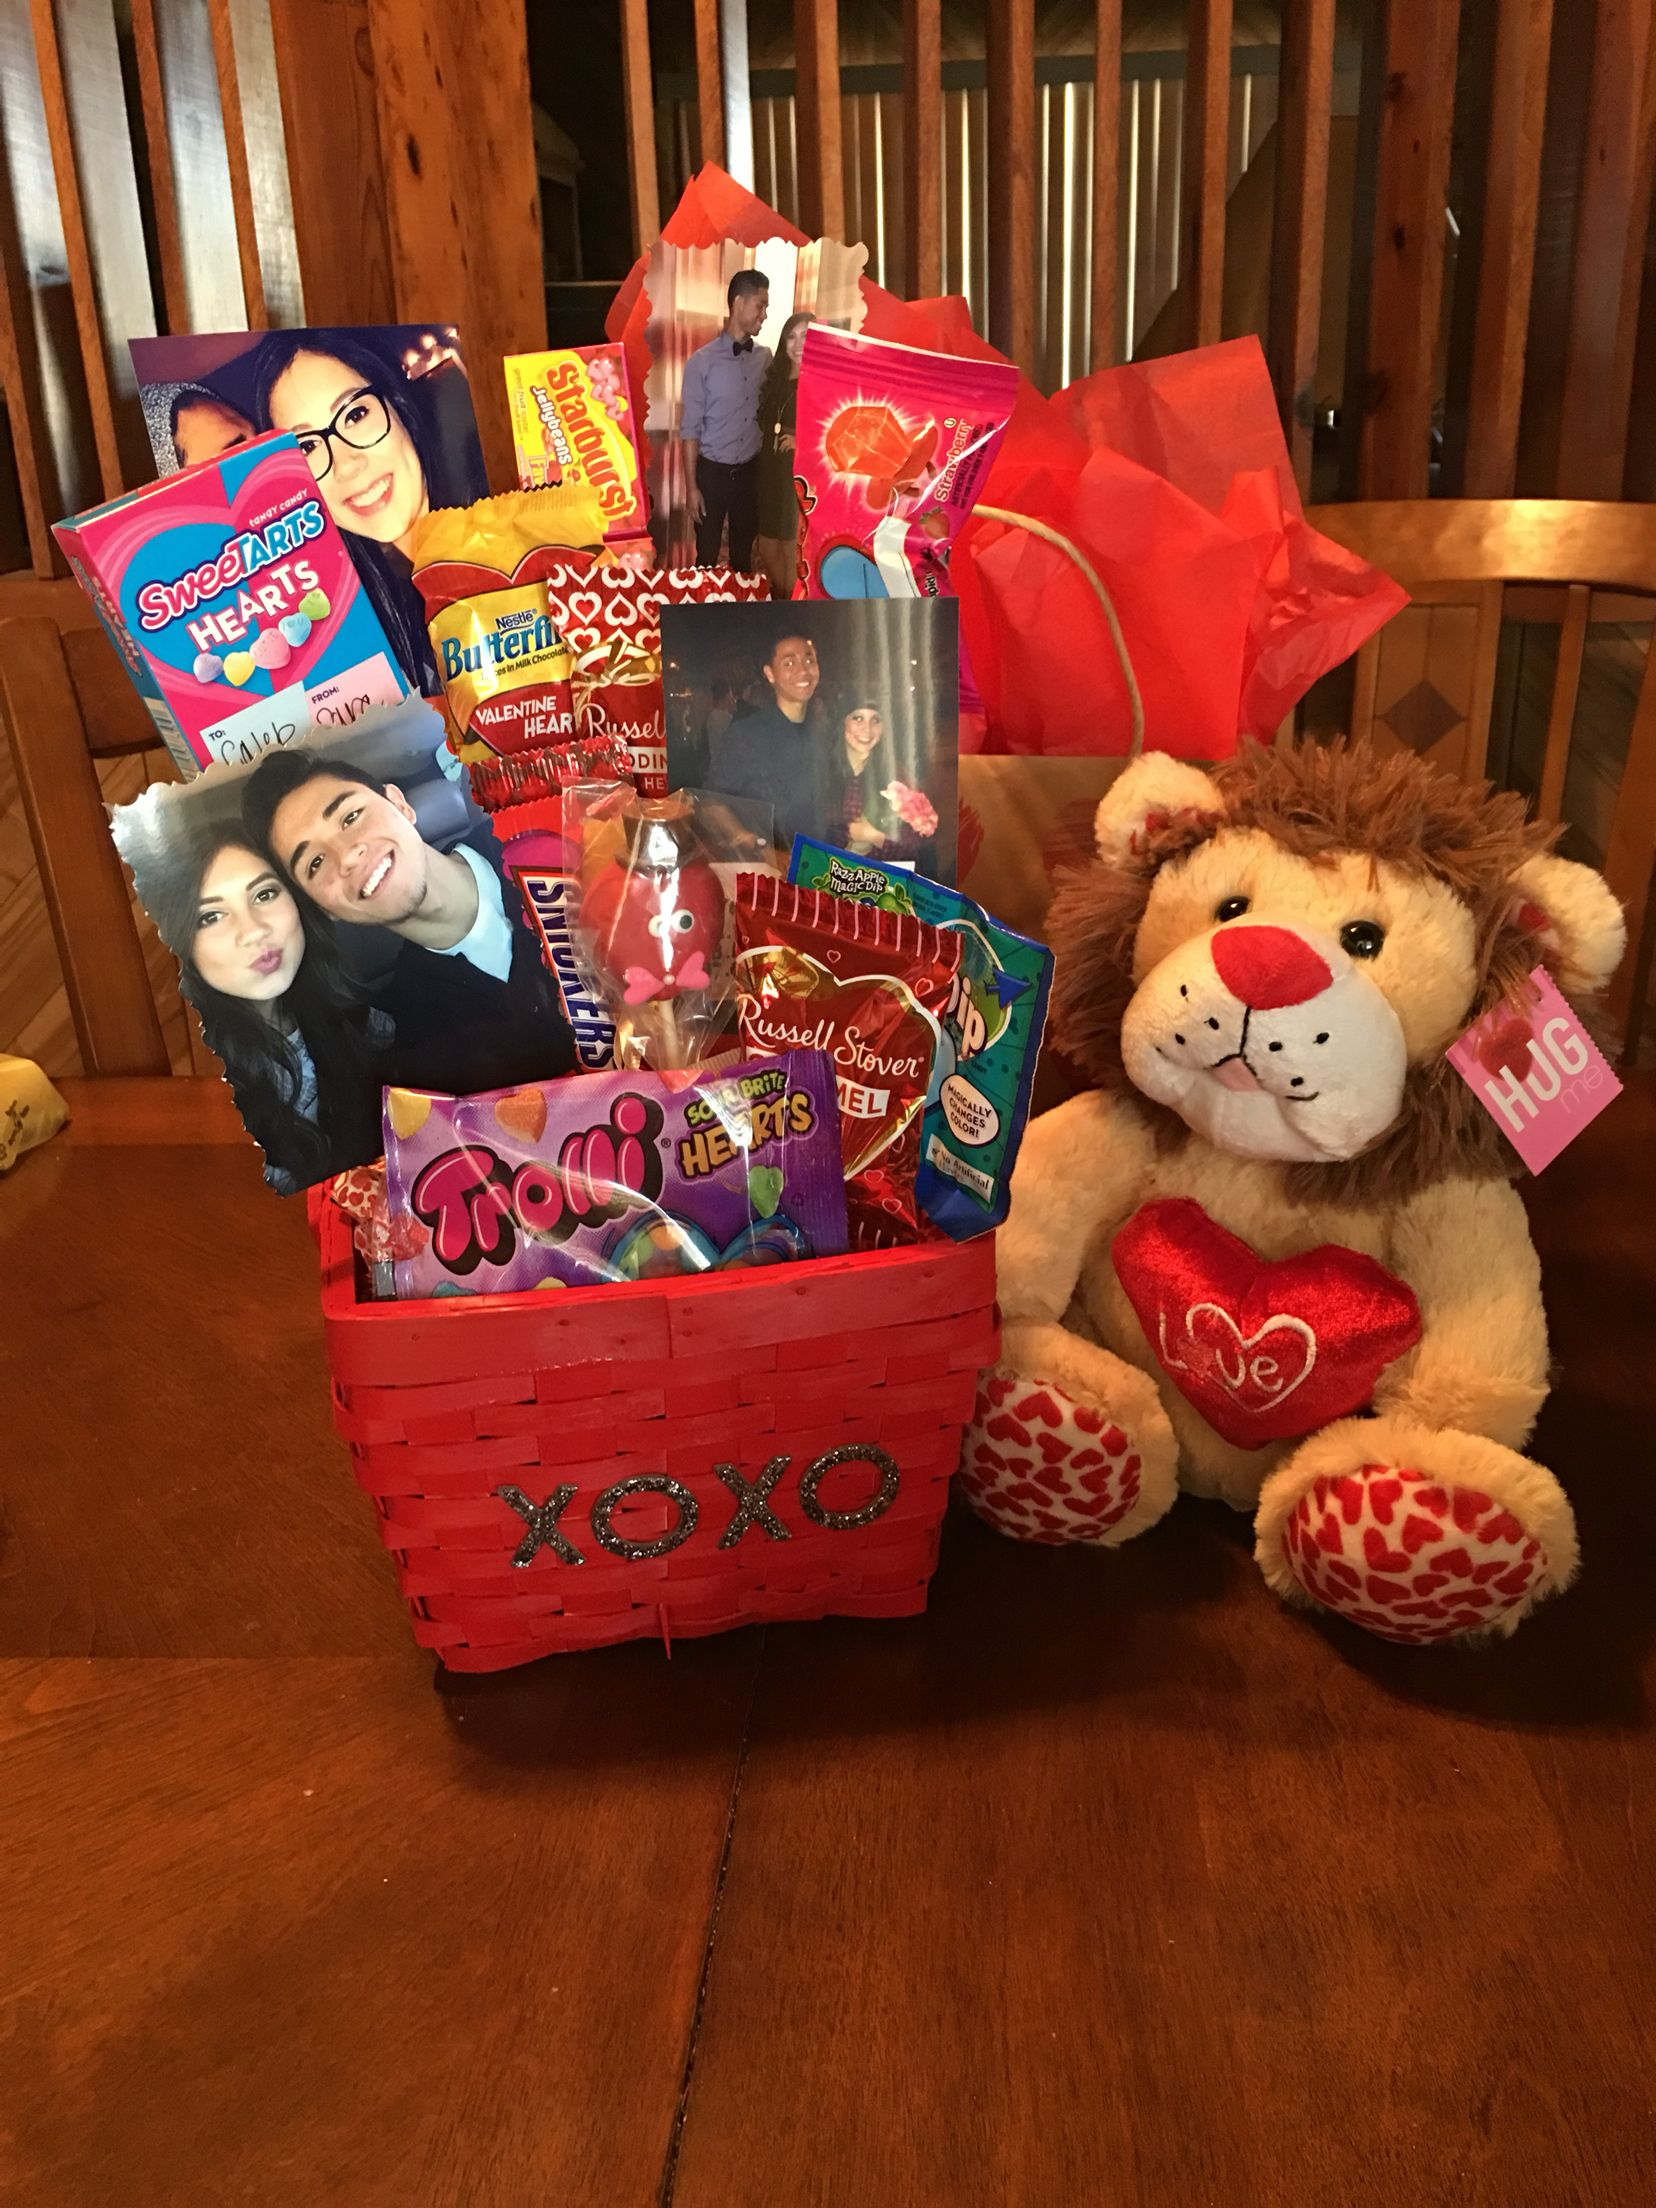 Valentines Day gift for him ️ ️ ️ | Valentines day gift